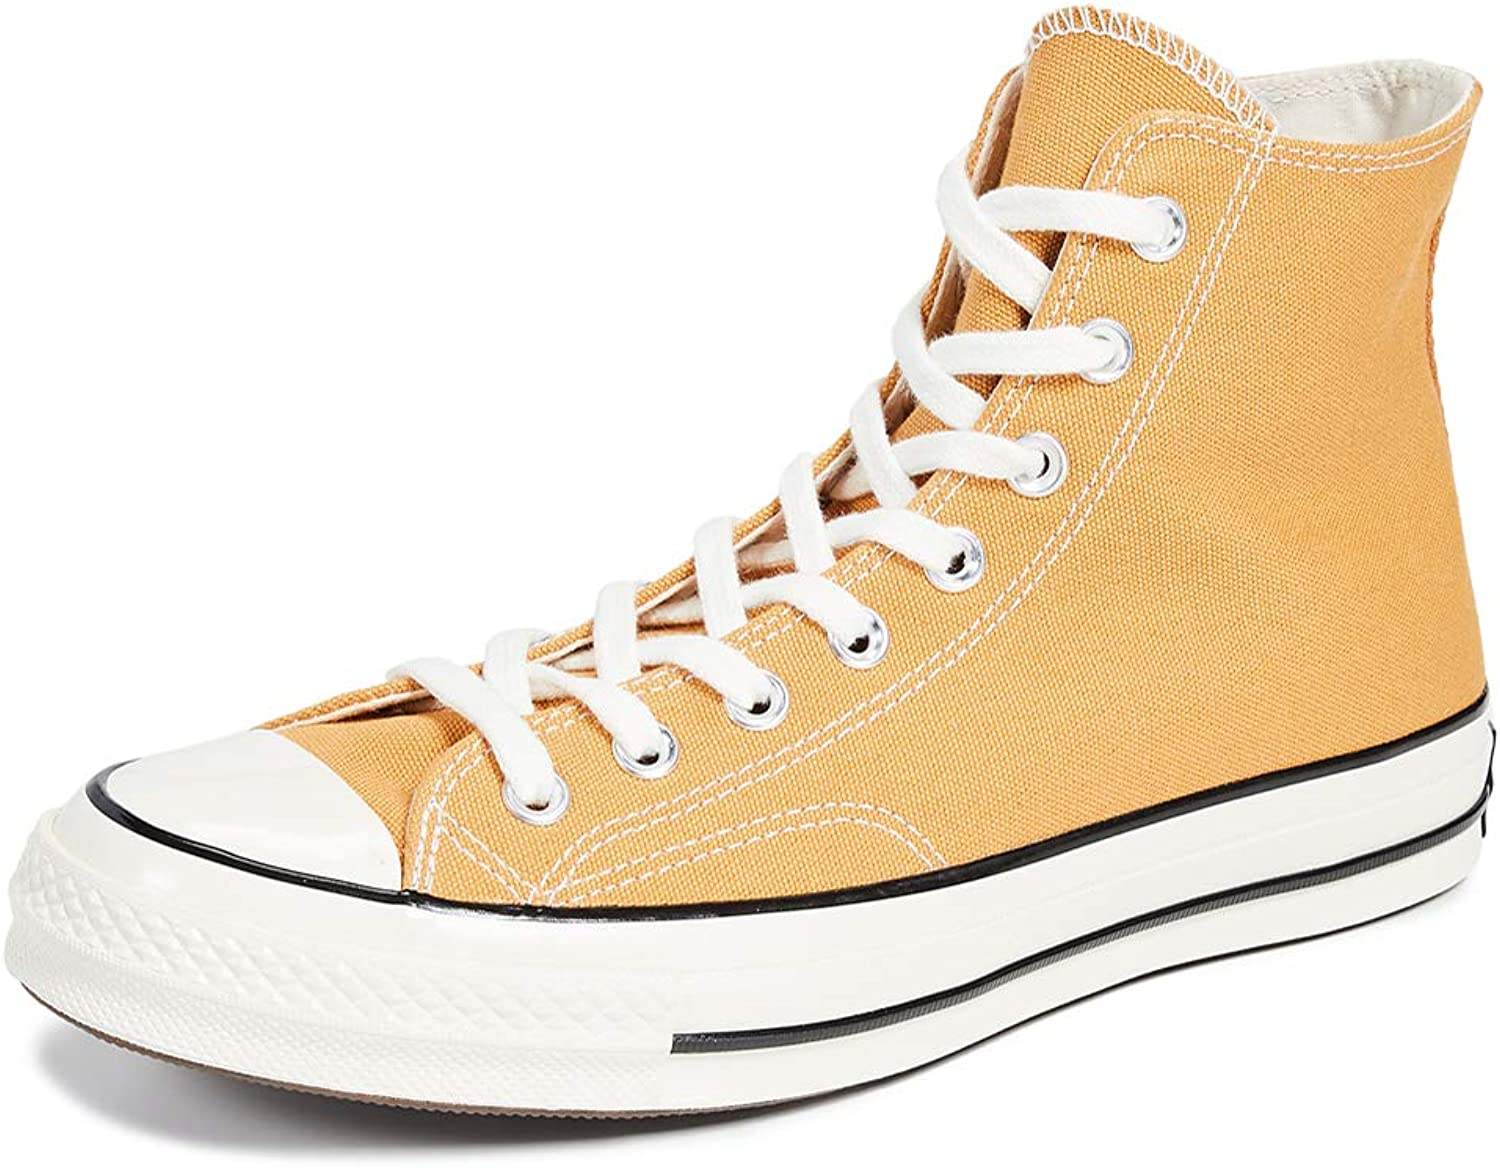 Chuck Taylor 70 High Top Sneakers